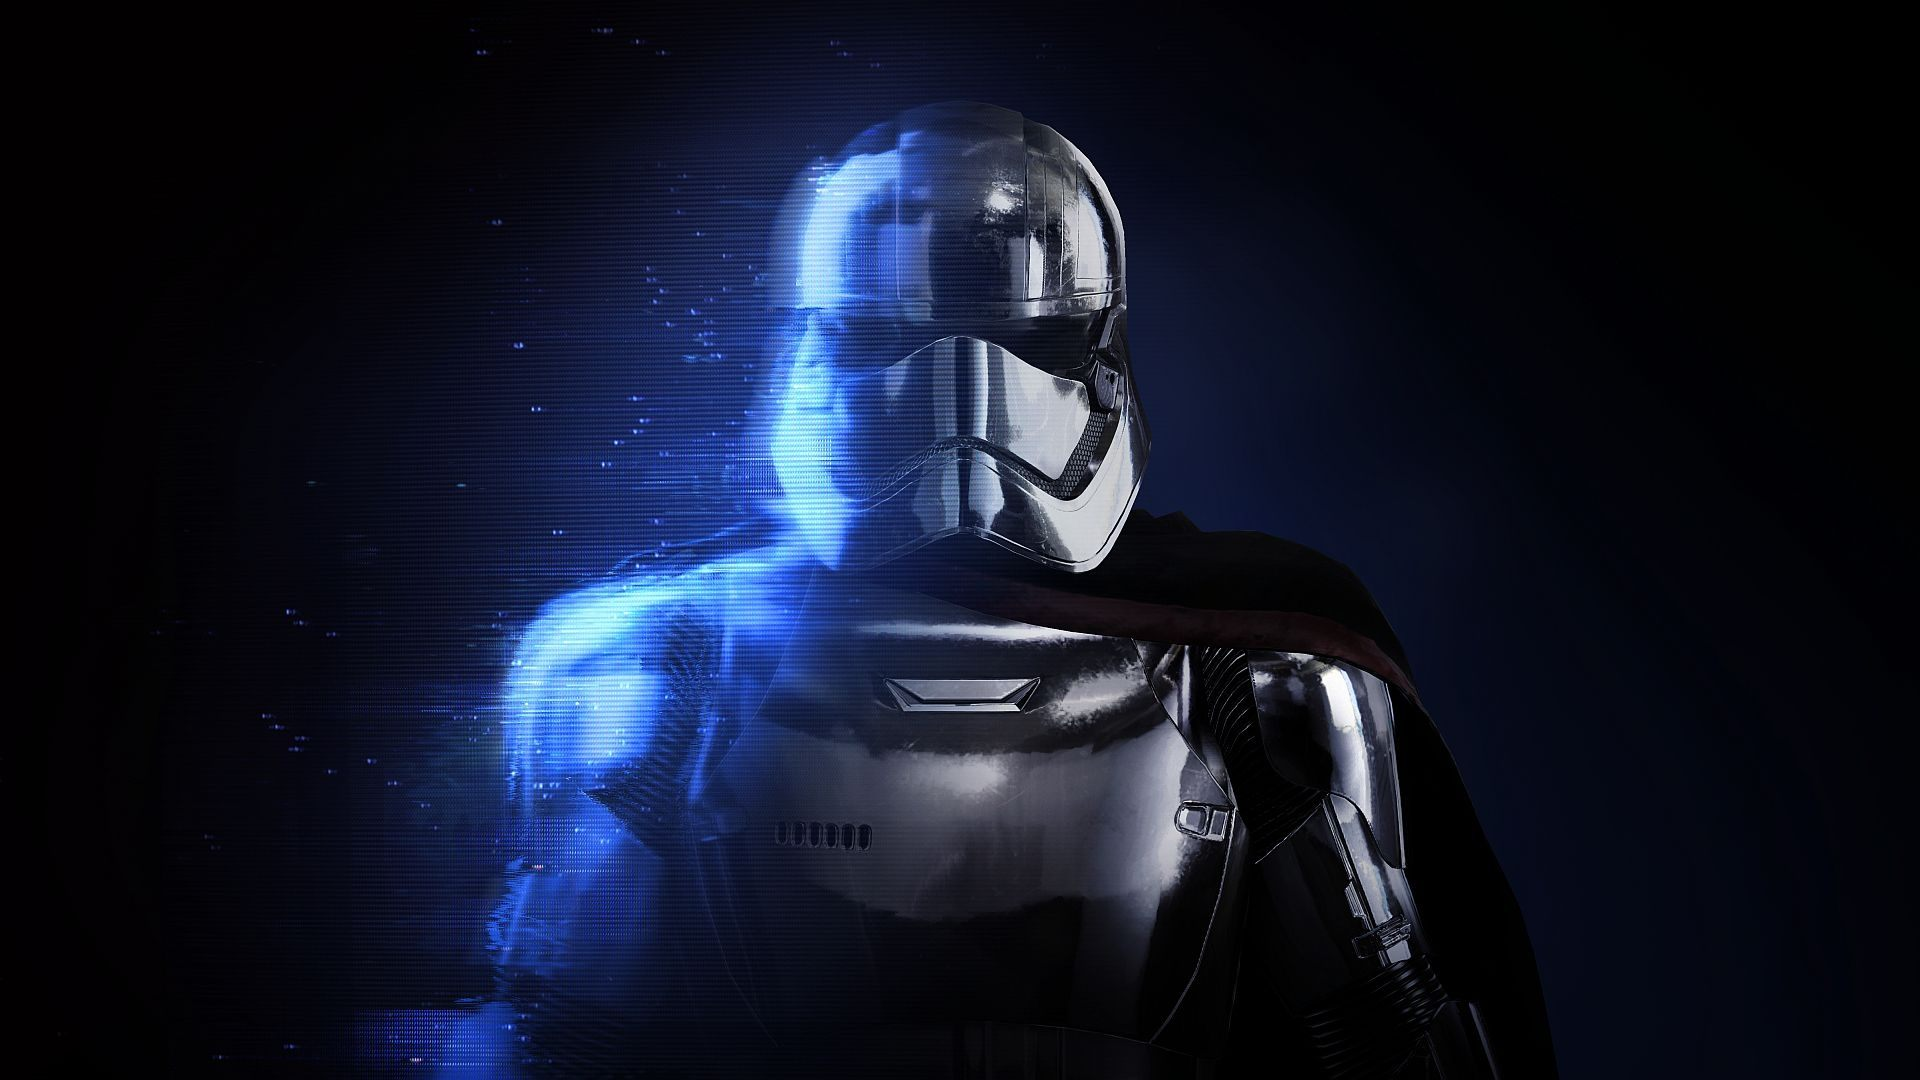 Wallpaper 4k Captain Phasma Star Wars Battlefront Ii